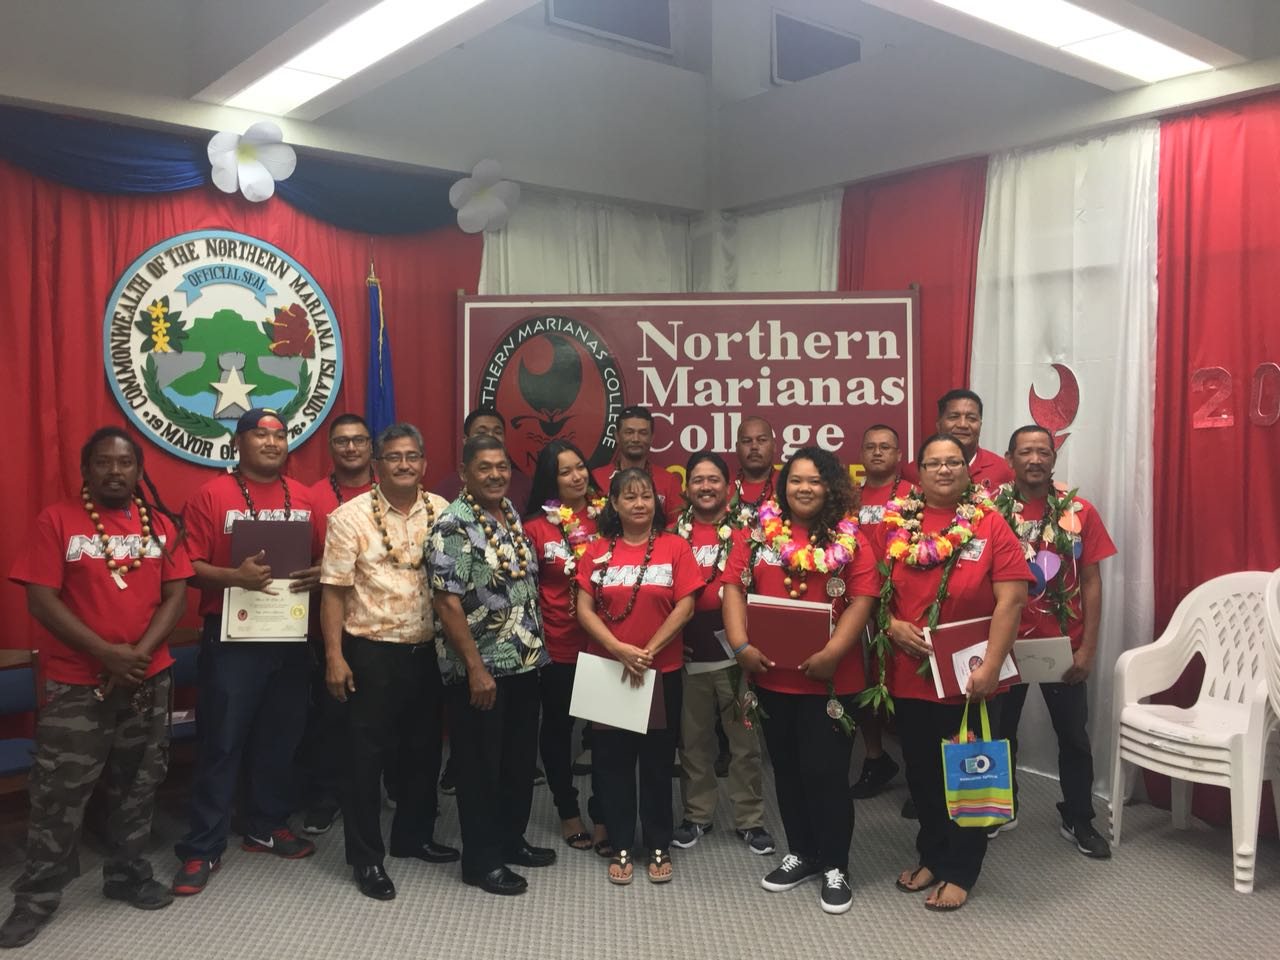 Graduates of the Adult Basic Education Program at Northern Marianas College in Rota pose for a group photo with CNMI Lt. Governor Victor Hocog (fifth from left) and Rota Mayor Efraim Atalig (fourth from left). This is the second cohort of graduates that completed the Adult Basic Education program since the program was reintroduced one year ago. Also in the photo is Martin Mendiola, NMC Rota Center Executive Director.